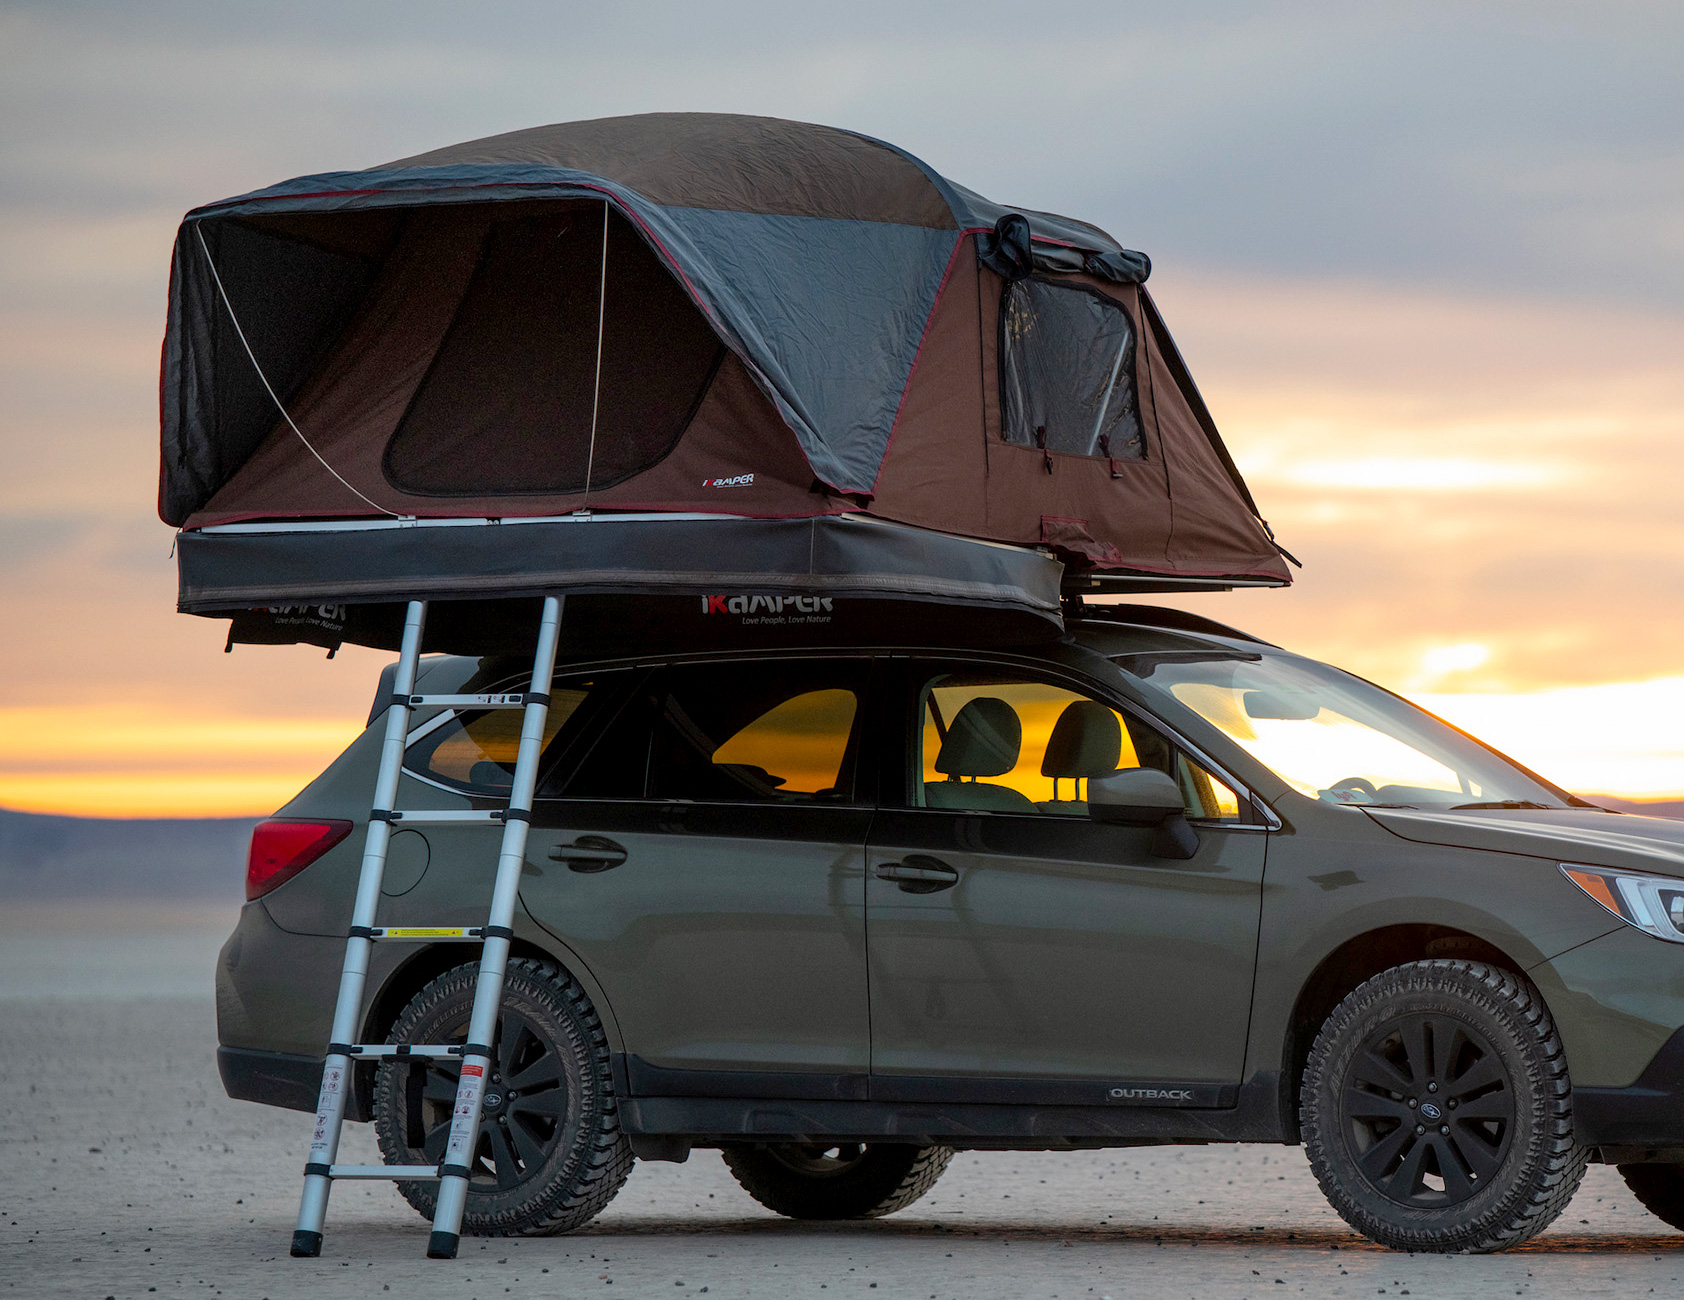 iKamper's New X-Cover Rooftop Tent is Even Better Than the Last at werd.com